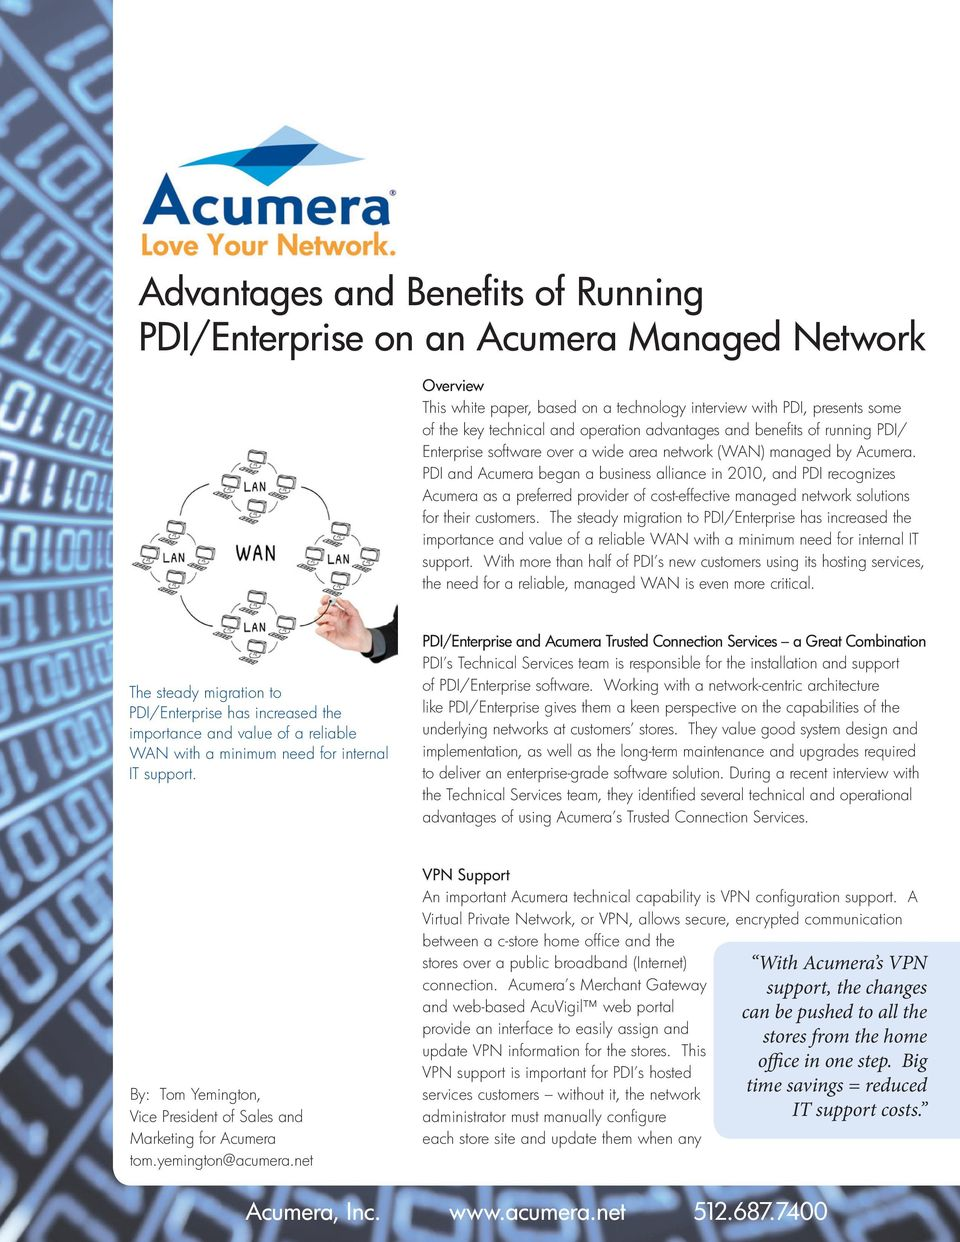 PDI and Acumera began a business alliance in 2010, and PDI recognizes Acumera as a preferred provider of cost-effective managed network solutions for their customers.